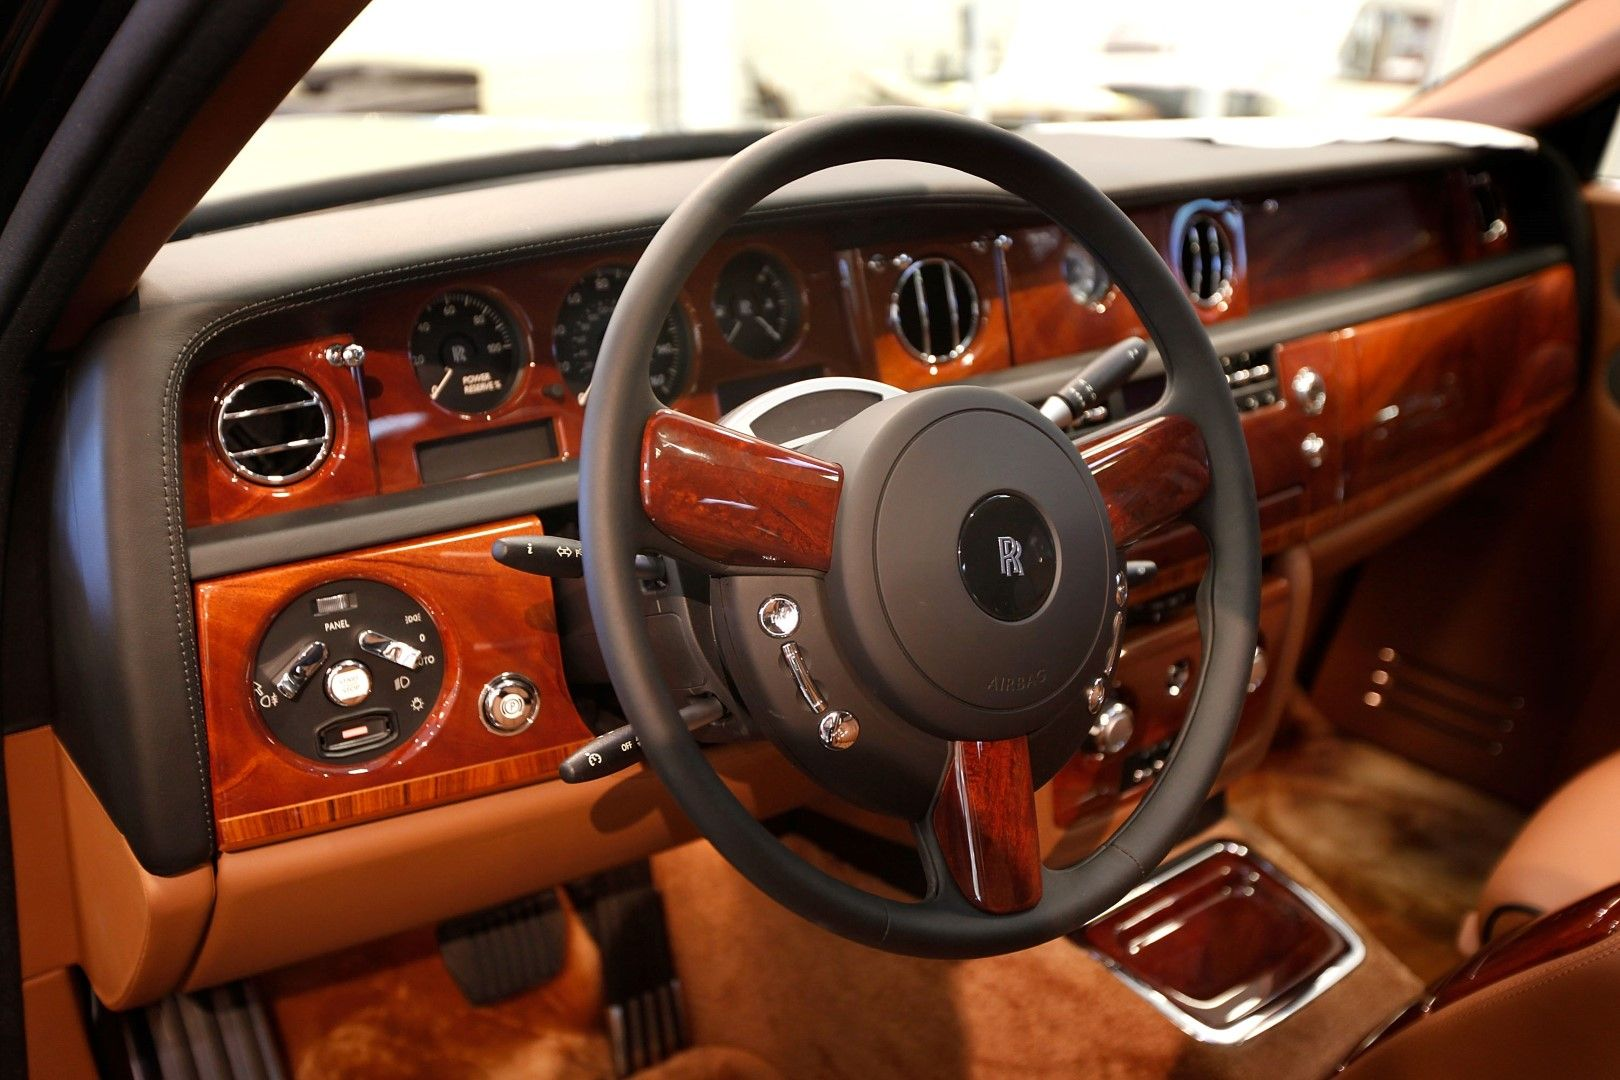 2013 Rolls-Royce Phantom Hardtop Coupe, Aviator Collection